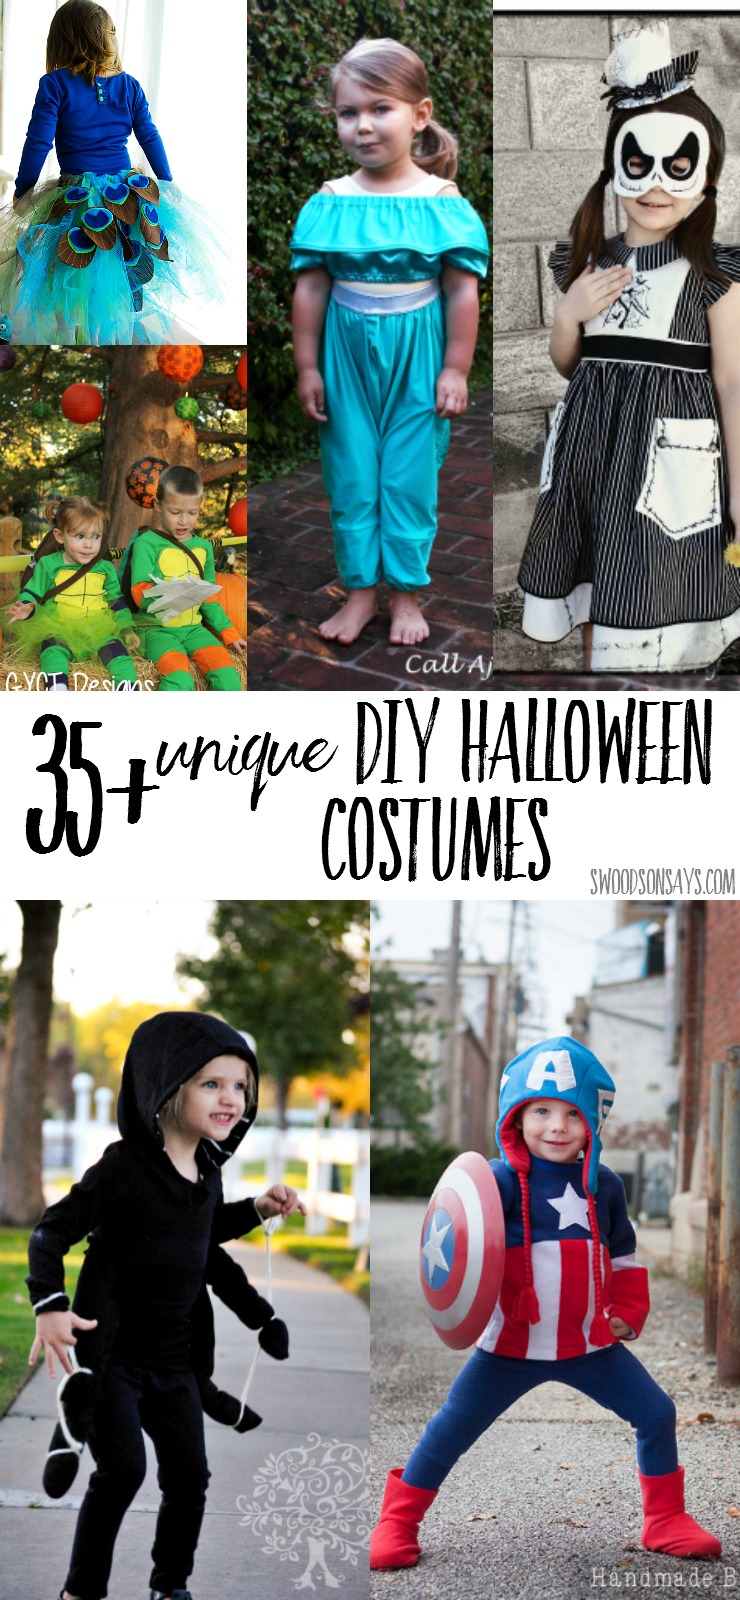 35+ Unique DIY Halloween costumes for kids - sew your kiddo up a comfy, one of a kind costume using sewing patterns that you already own or can use for normal clothes too!